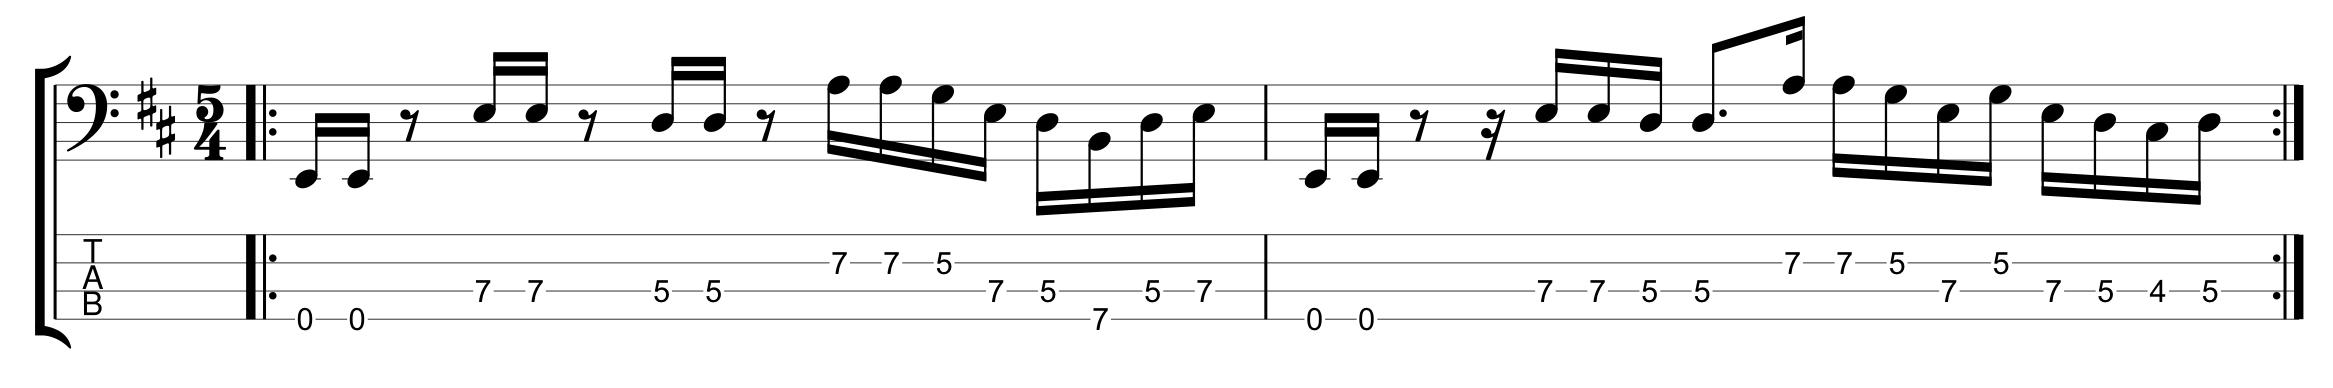 Odd Meter 5/4 with a 16th note feel